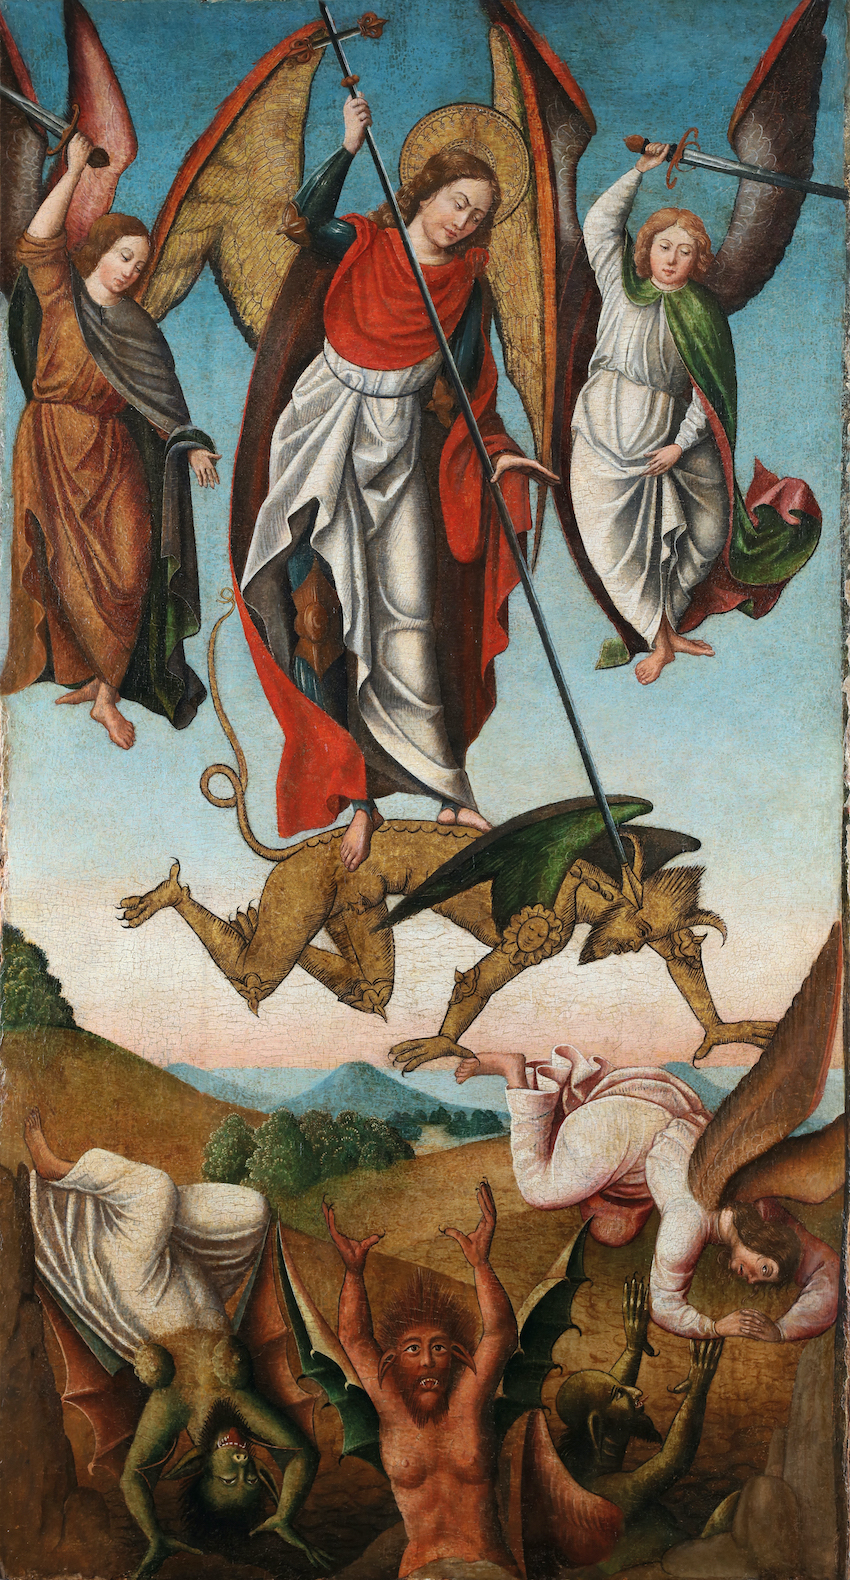 Saint George slaying the Devil